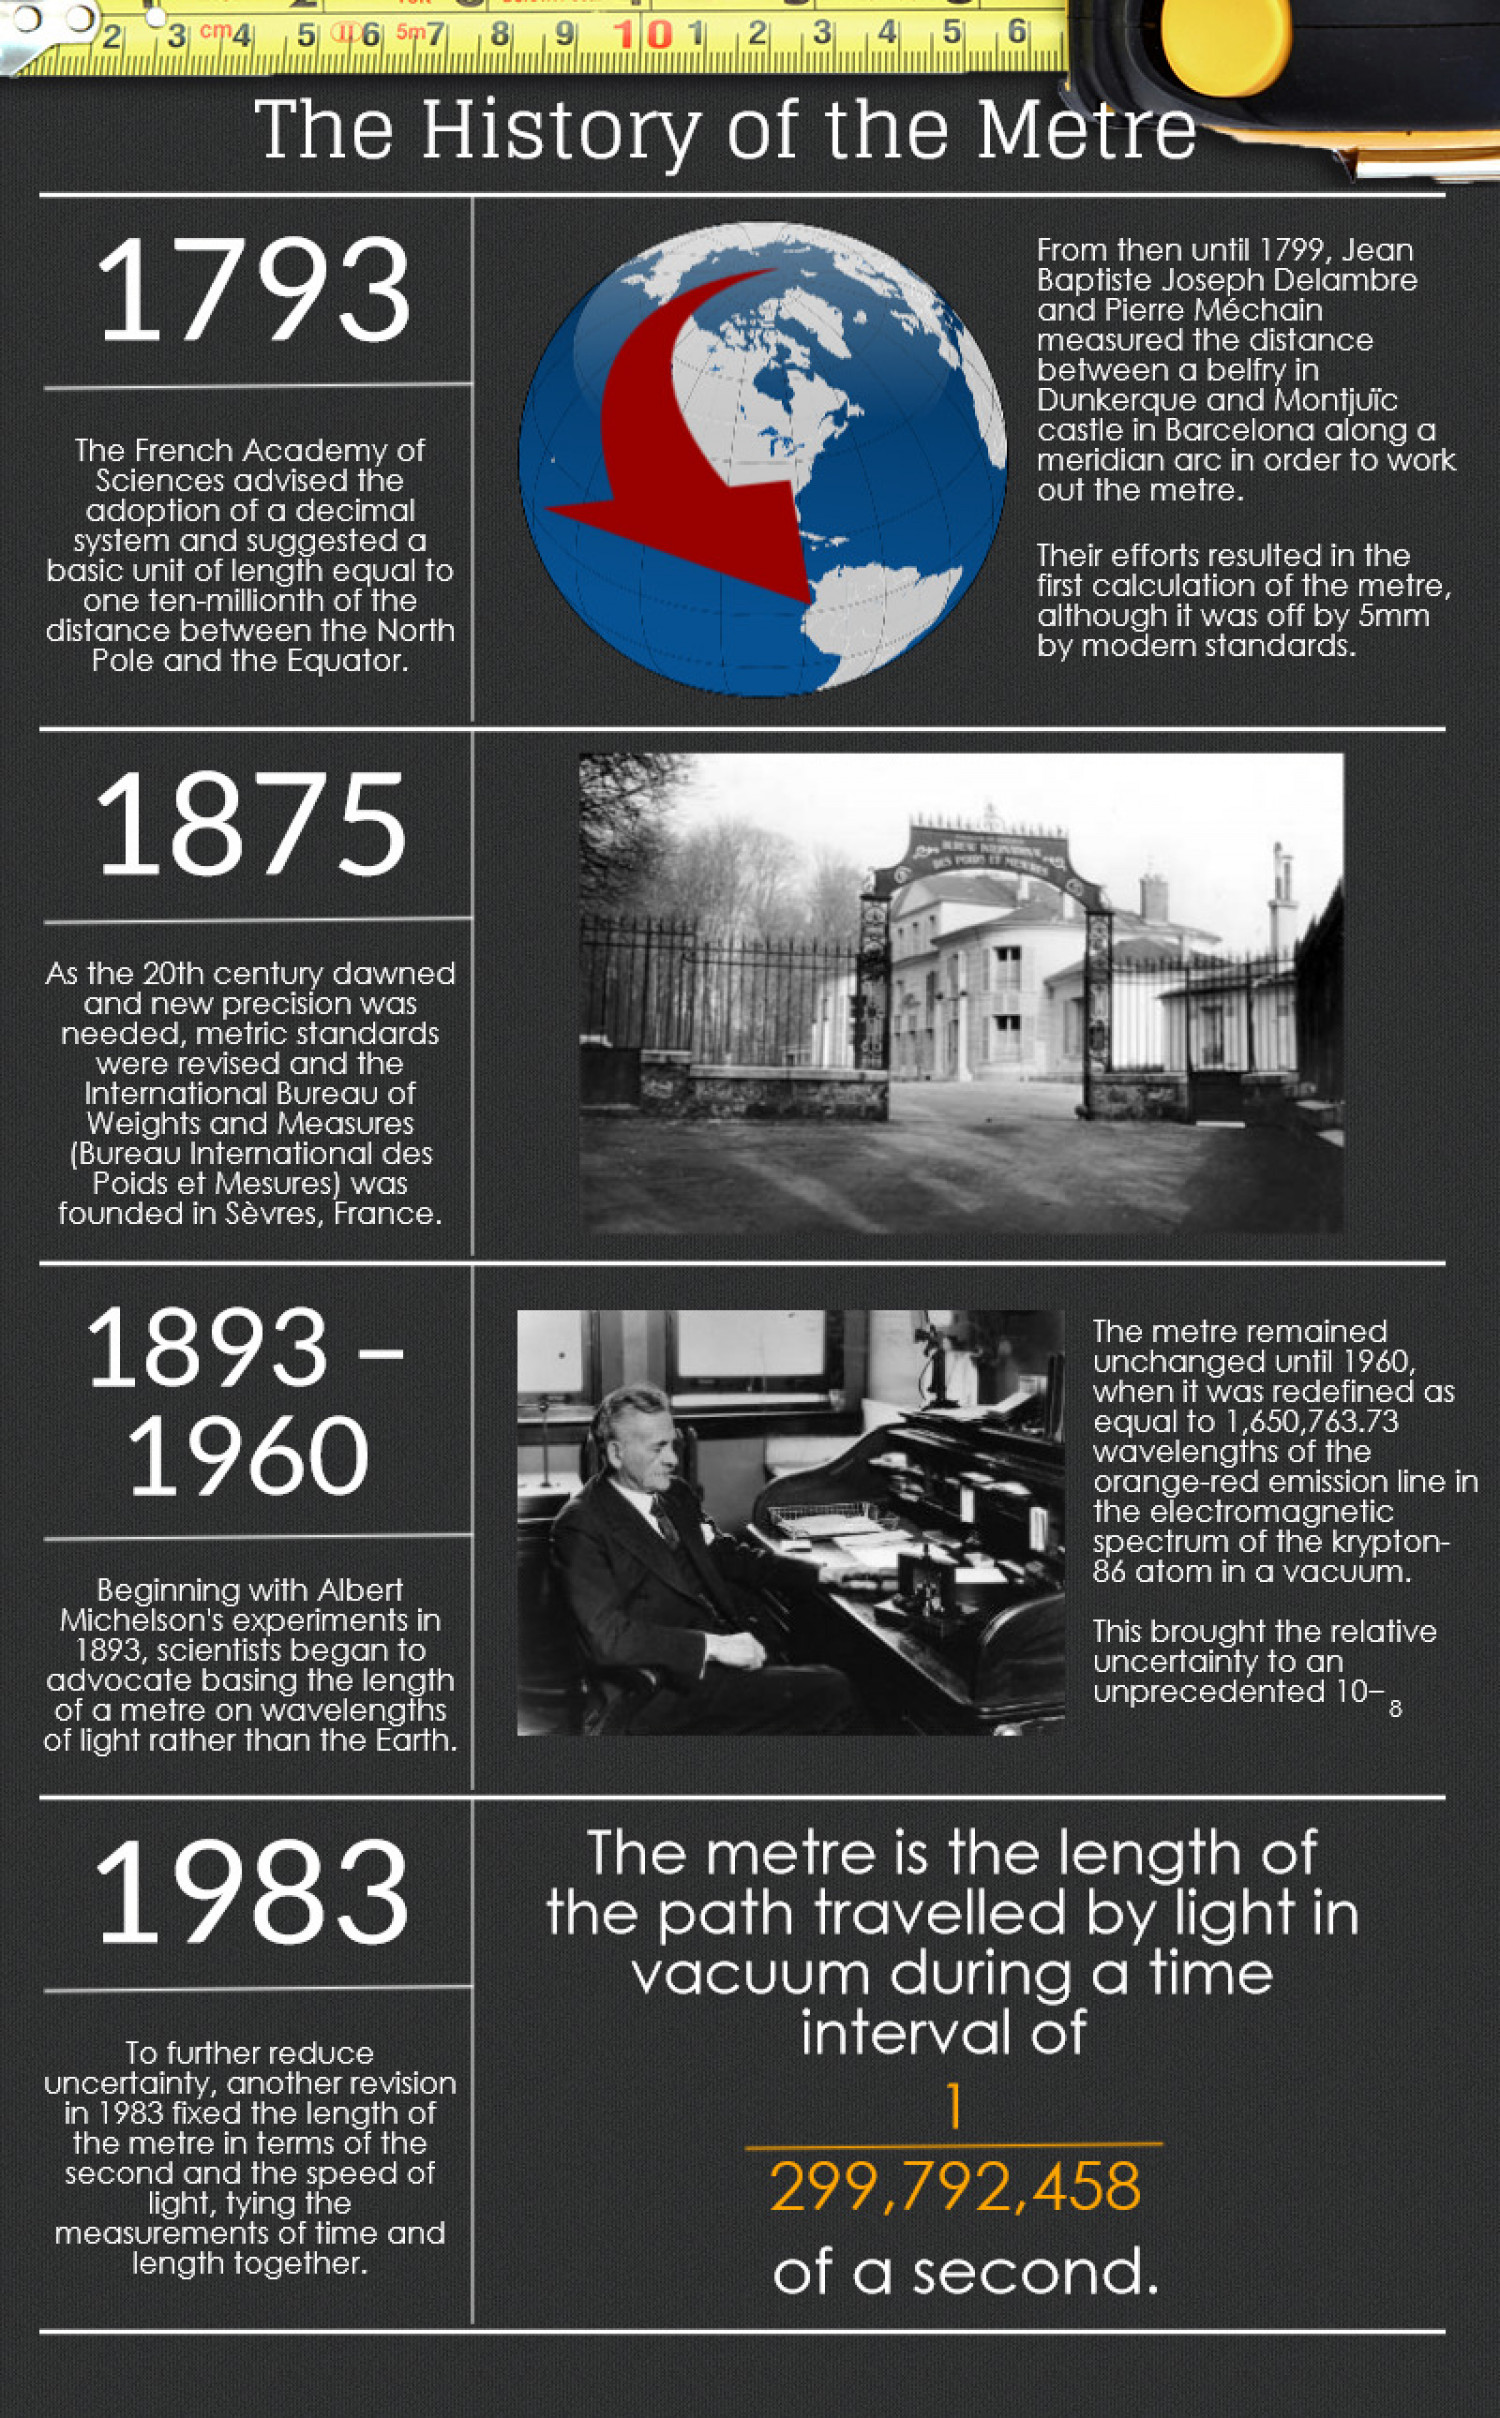 The History of the Metre Infographic